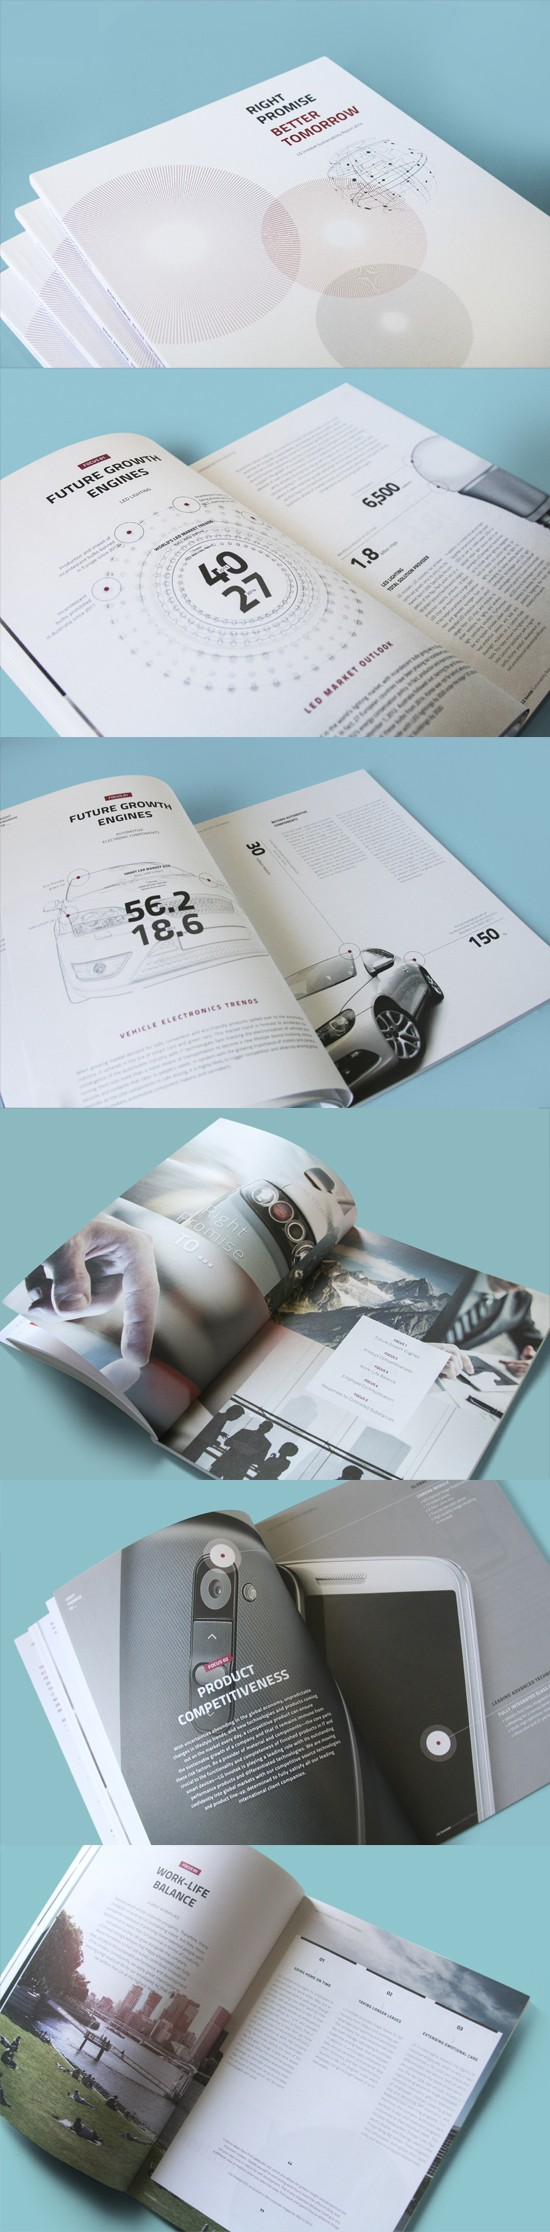 LG Innotek Sustainability Report 2014-1